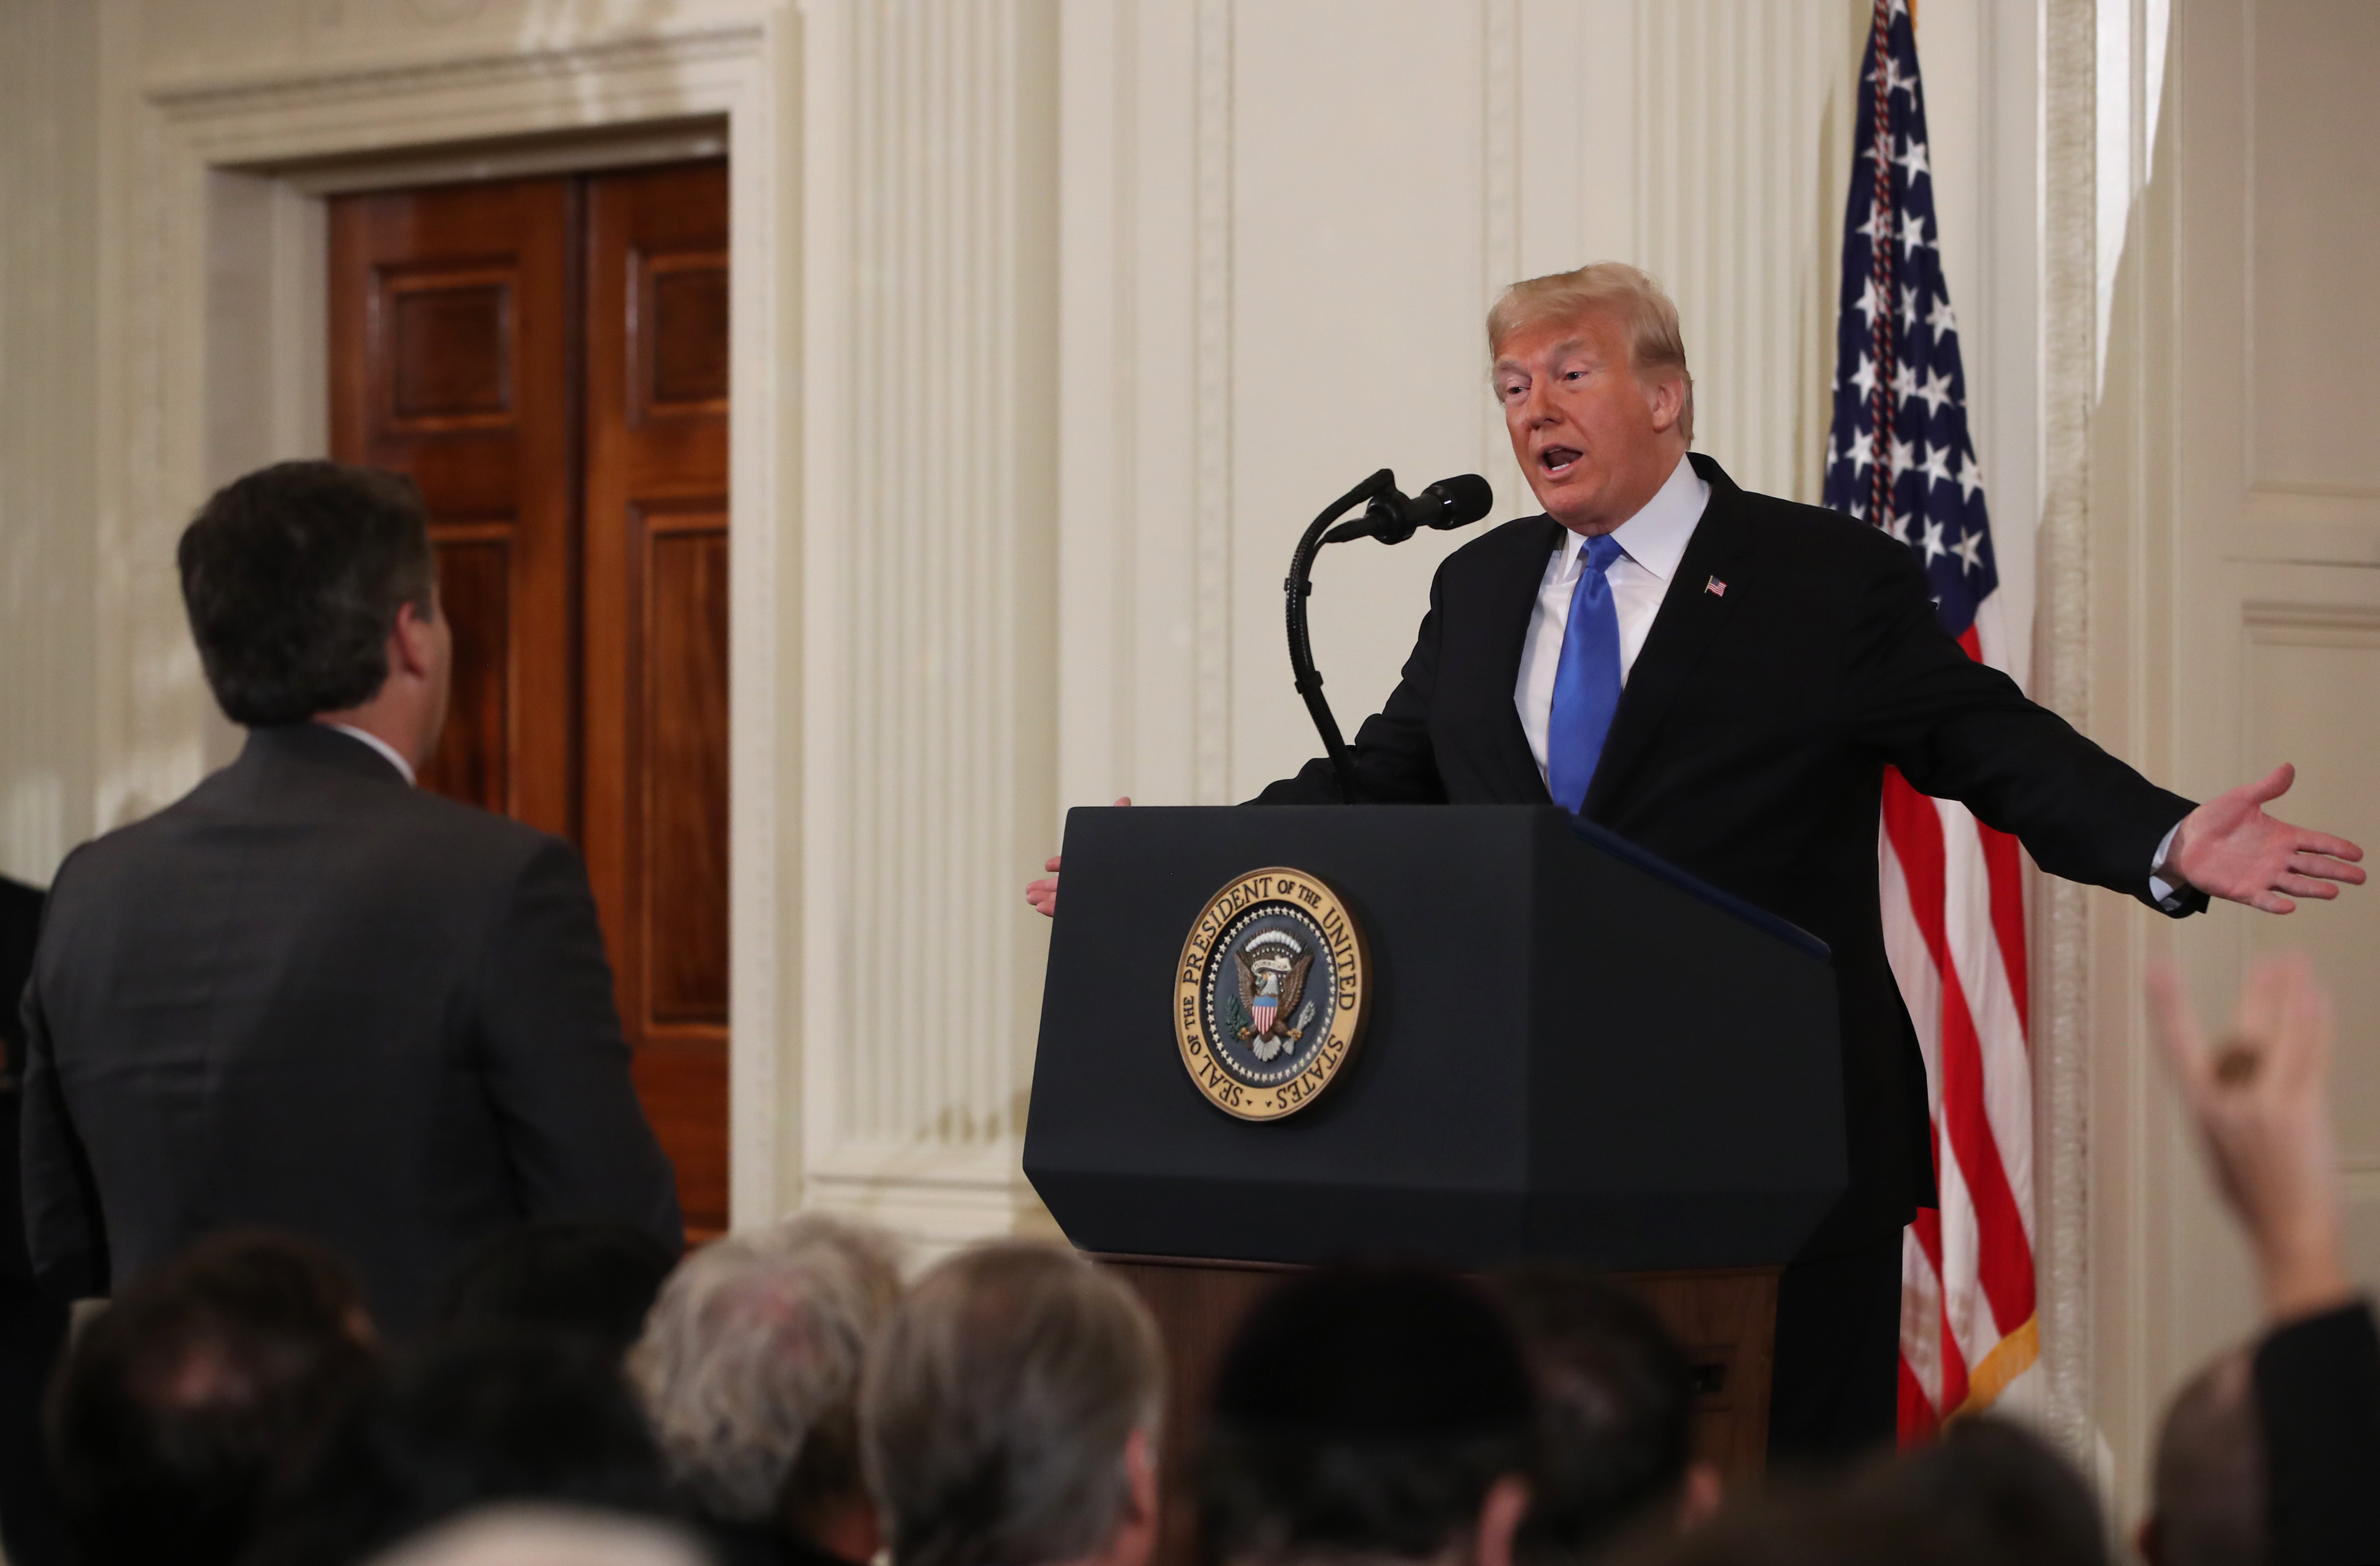 U.S. President Donald Trump gets into an exchange with Jim Acosta of CNN after giving remarks a day after the midterm elections on November 7, 2018 in the East Room of the White House in Washington, DC. Republicans kept the Senate majority but lost control of the House to the Democrats.